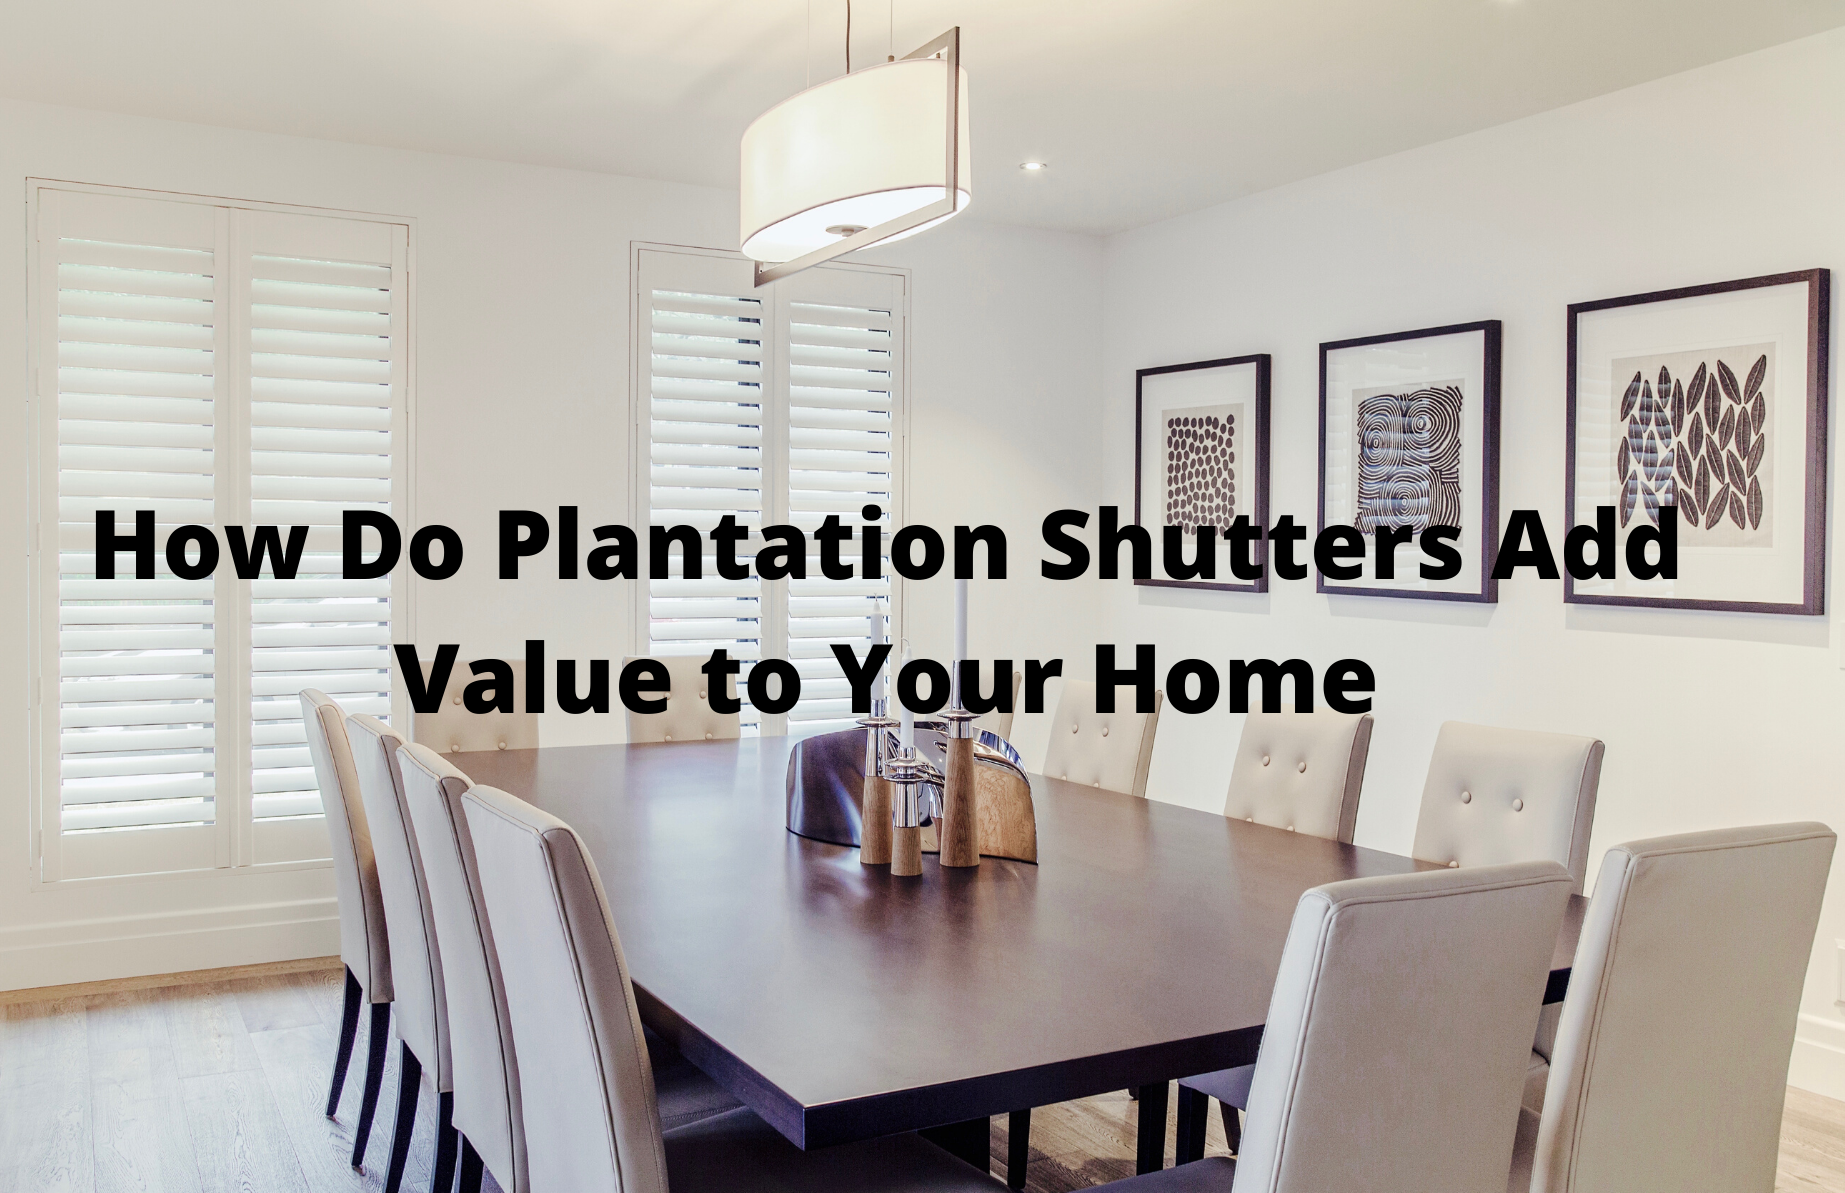 How Do Plantation Shutters Add Value to Your Home